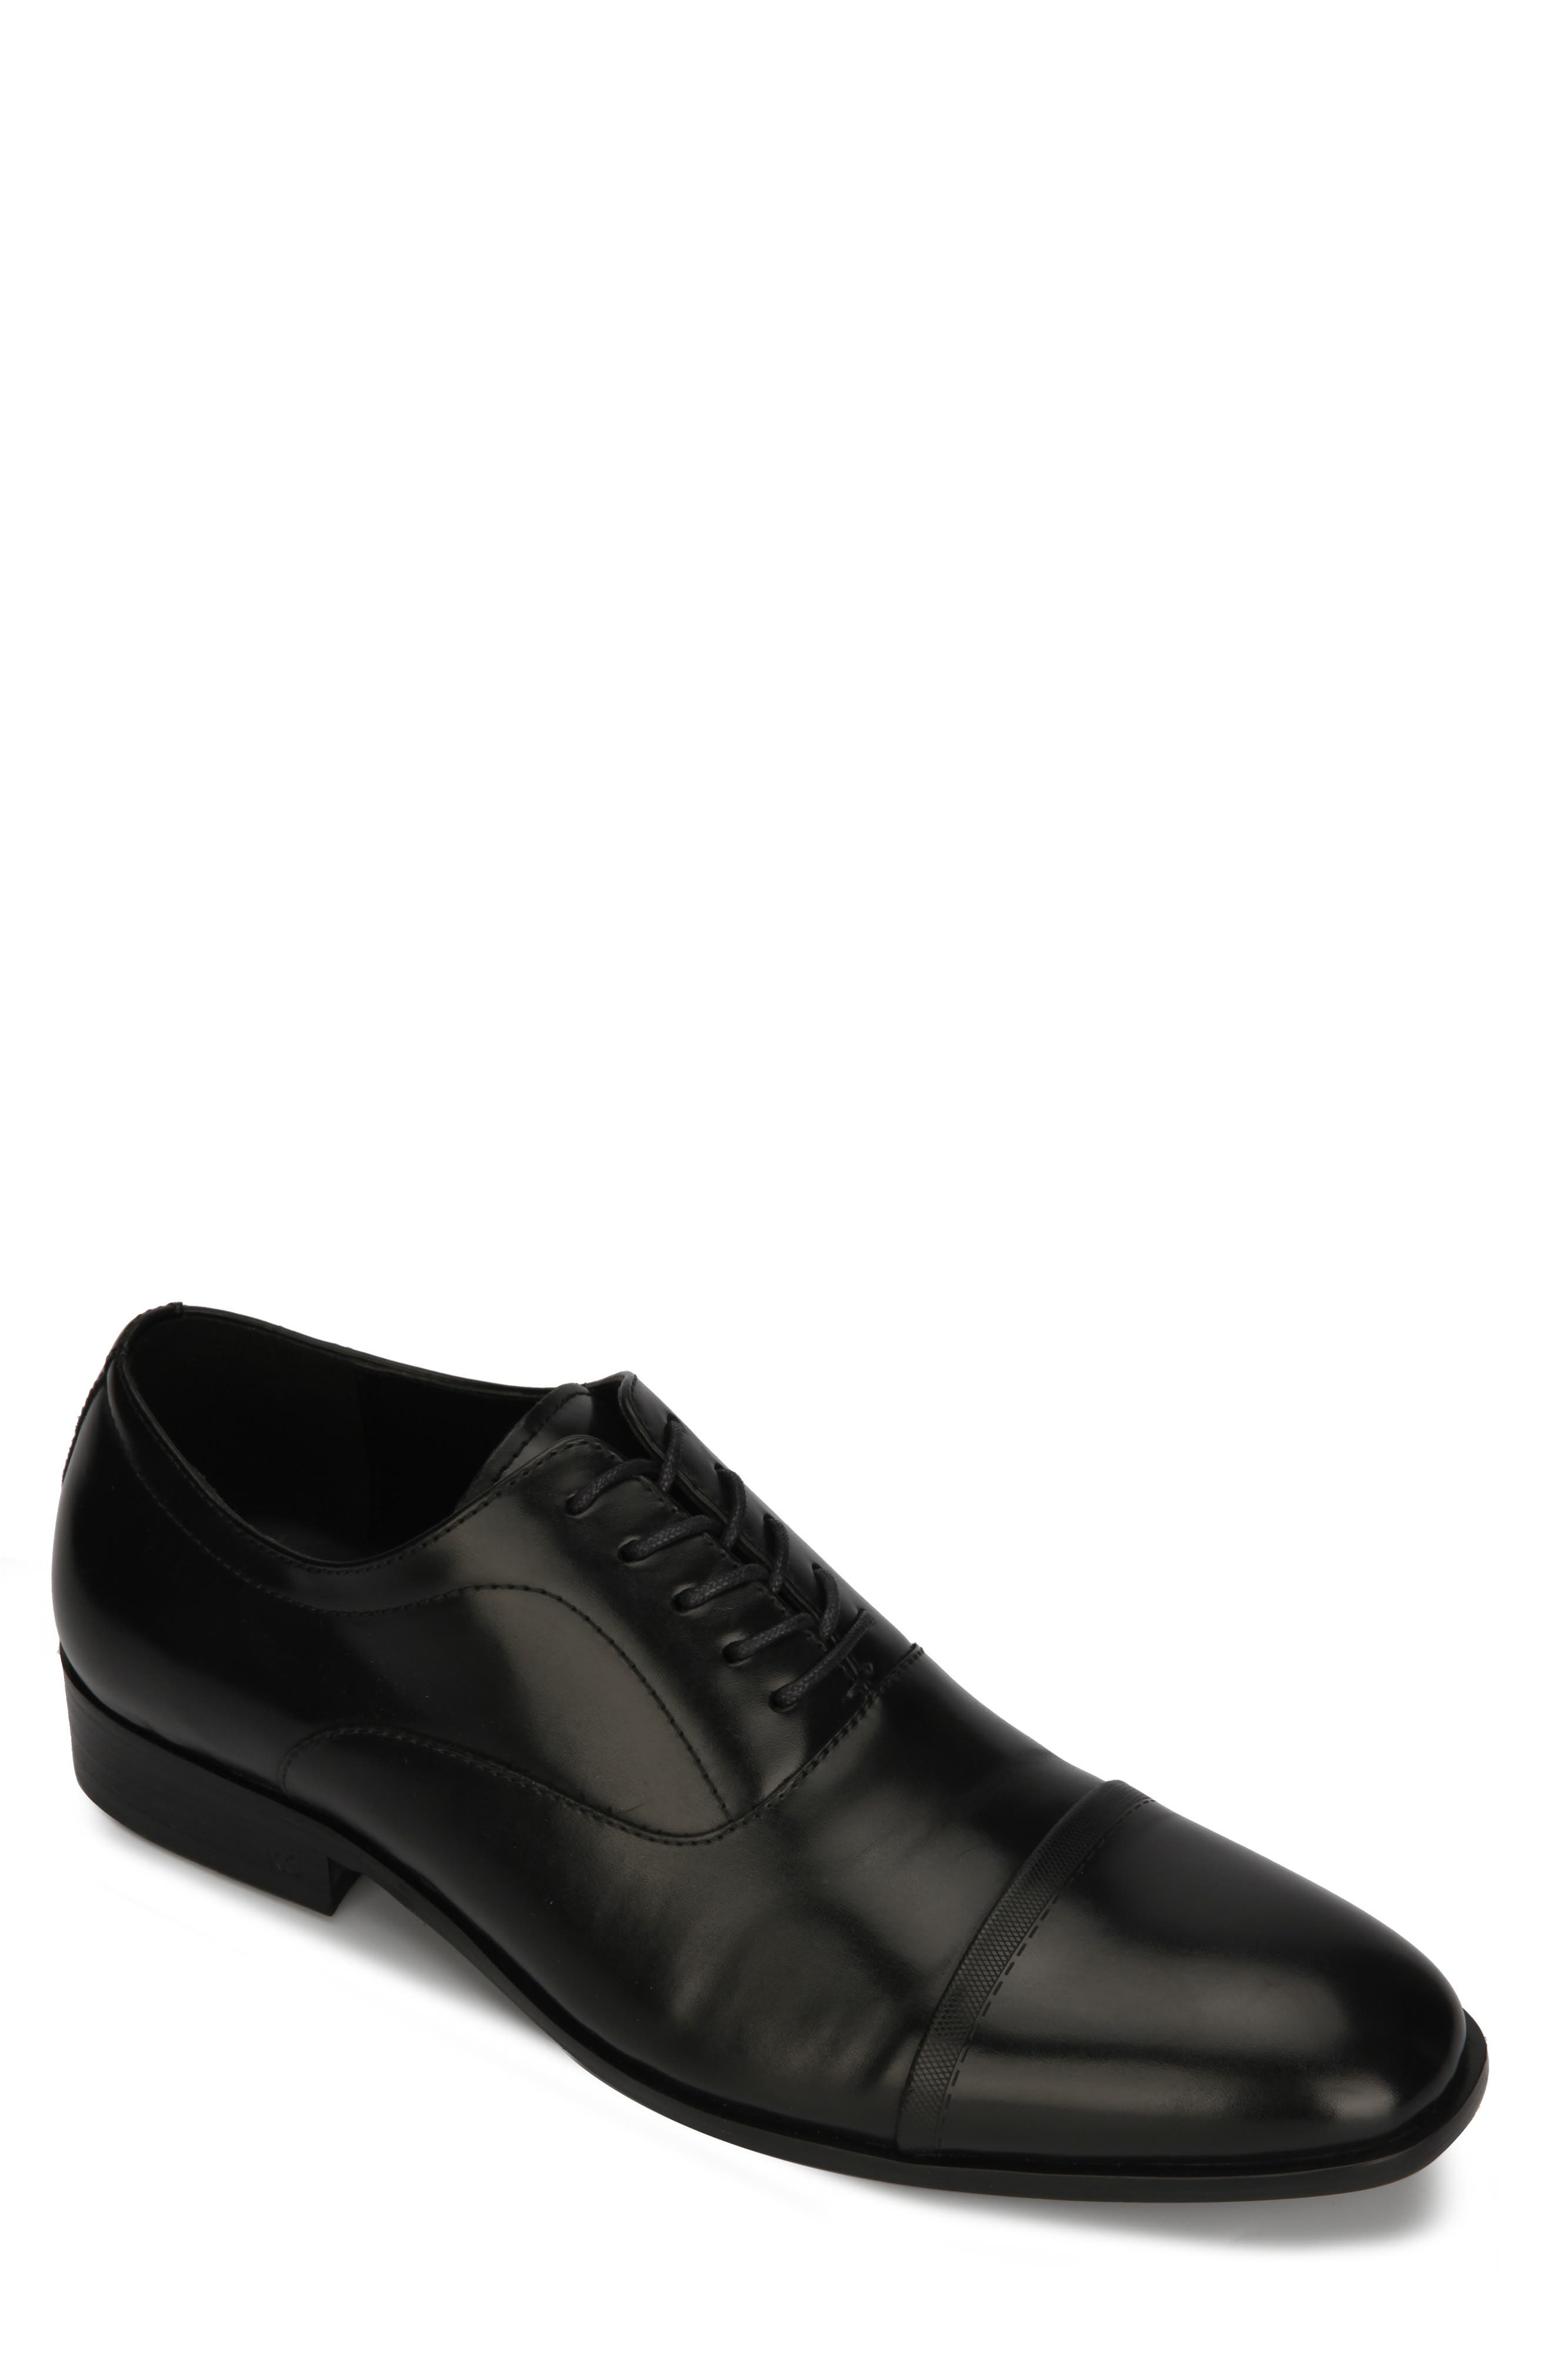 REACTION KENNETH COLE Robson Cap Toe Oxford, Main, color, BLACK